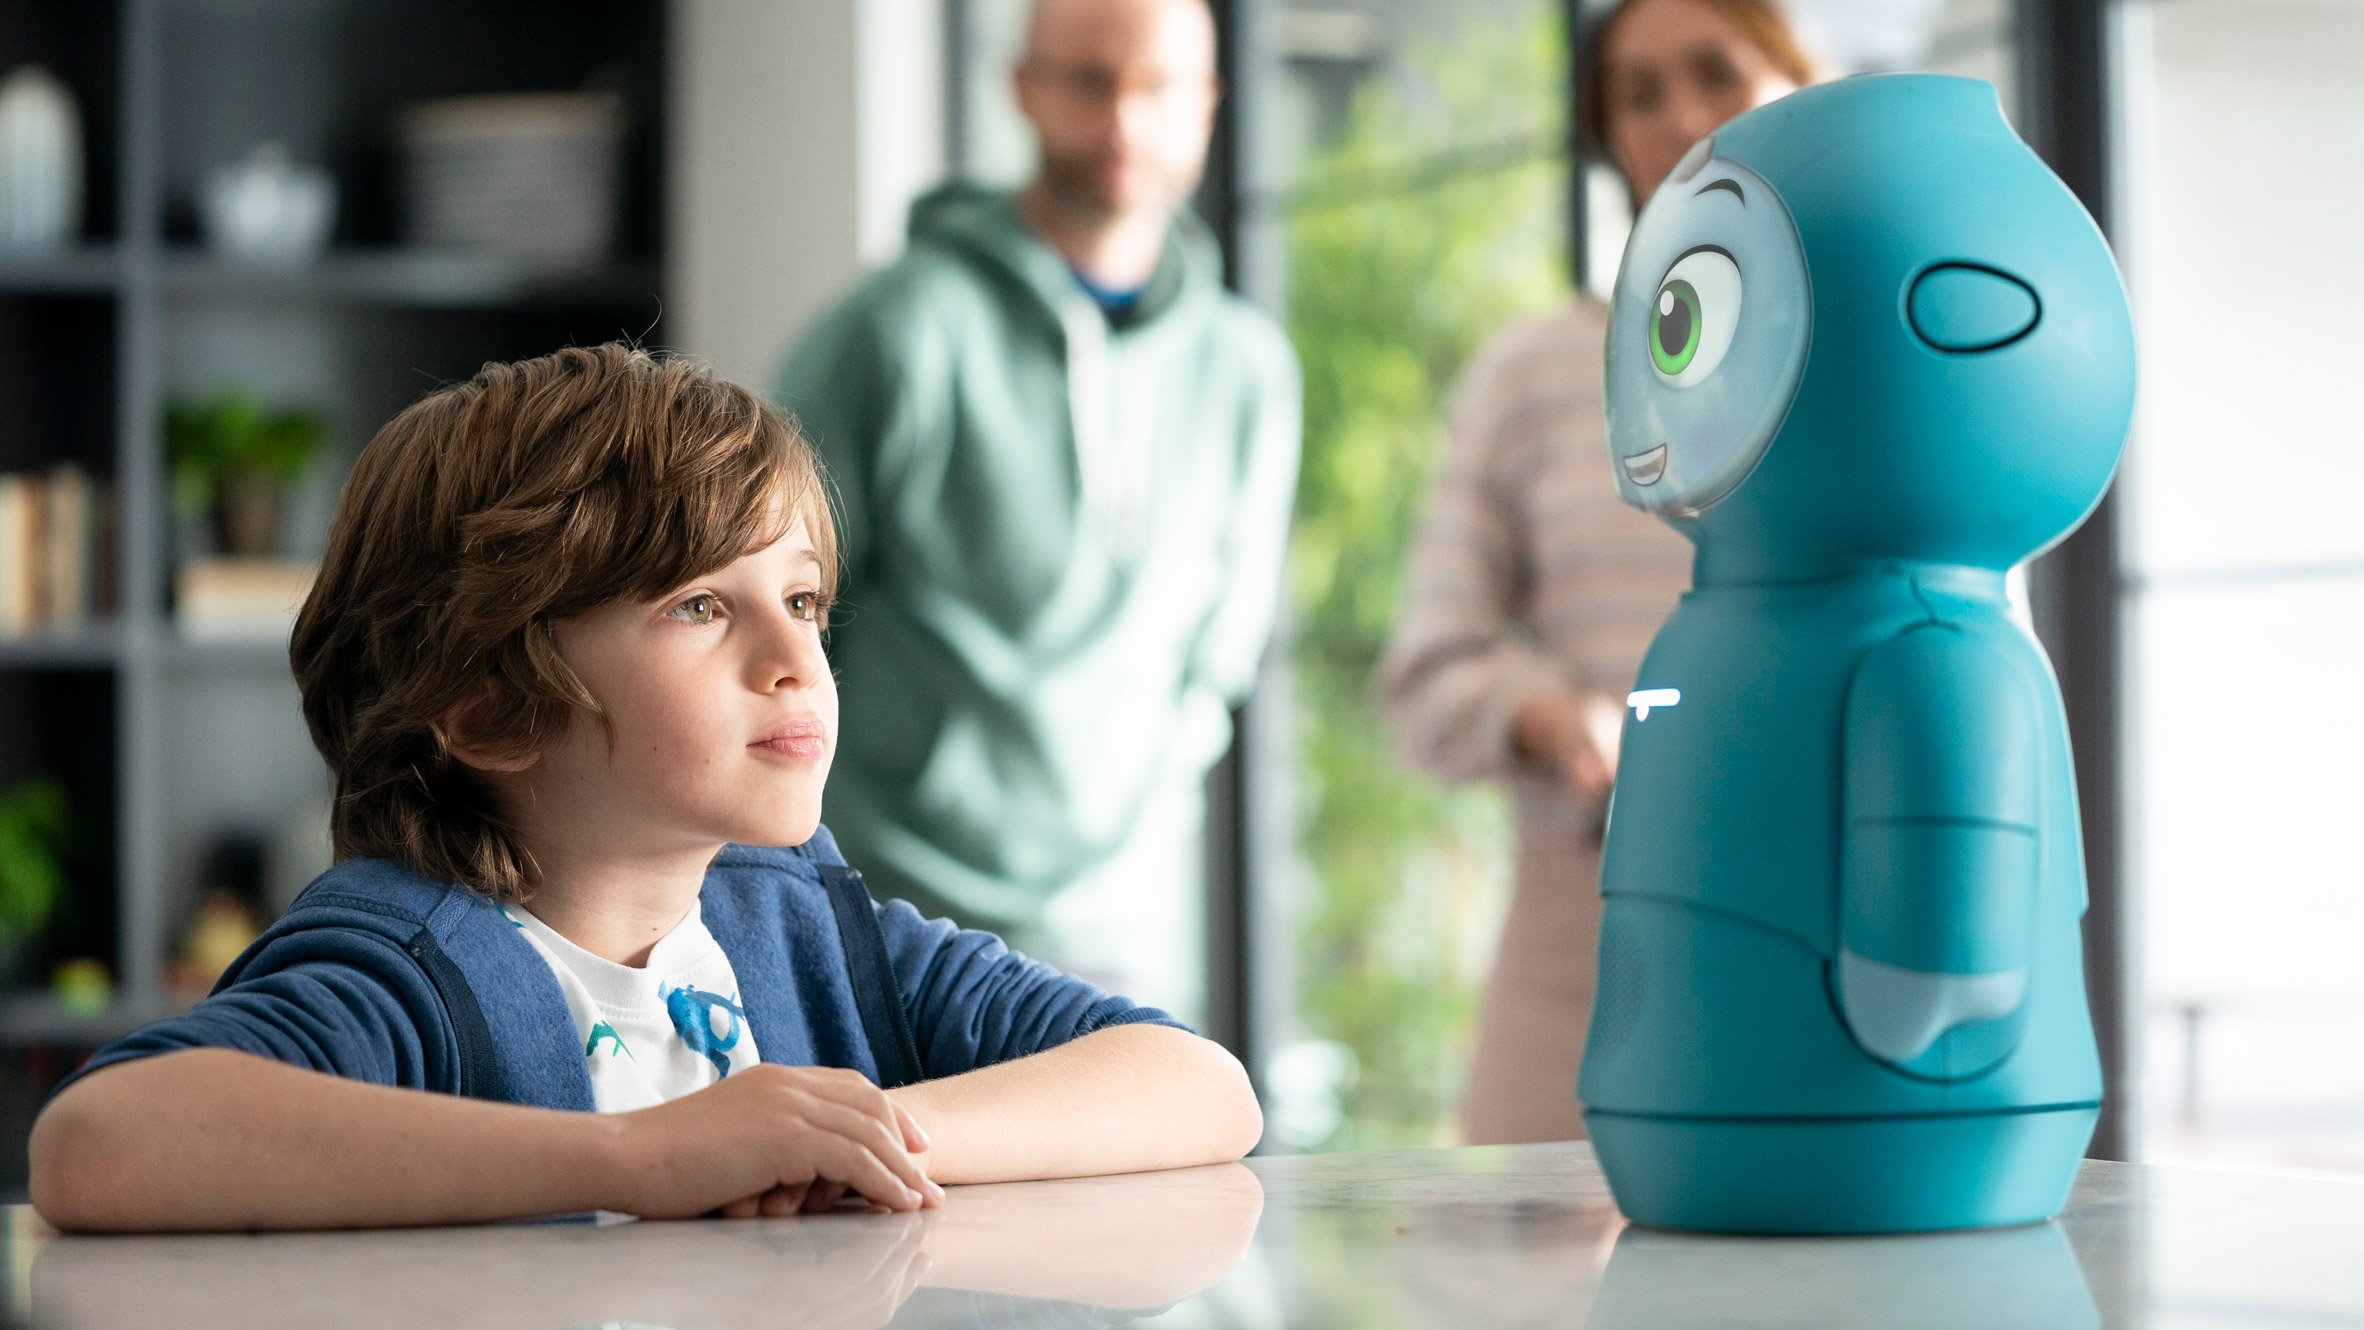 Moxie smart robot for teaching children by Embodied